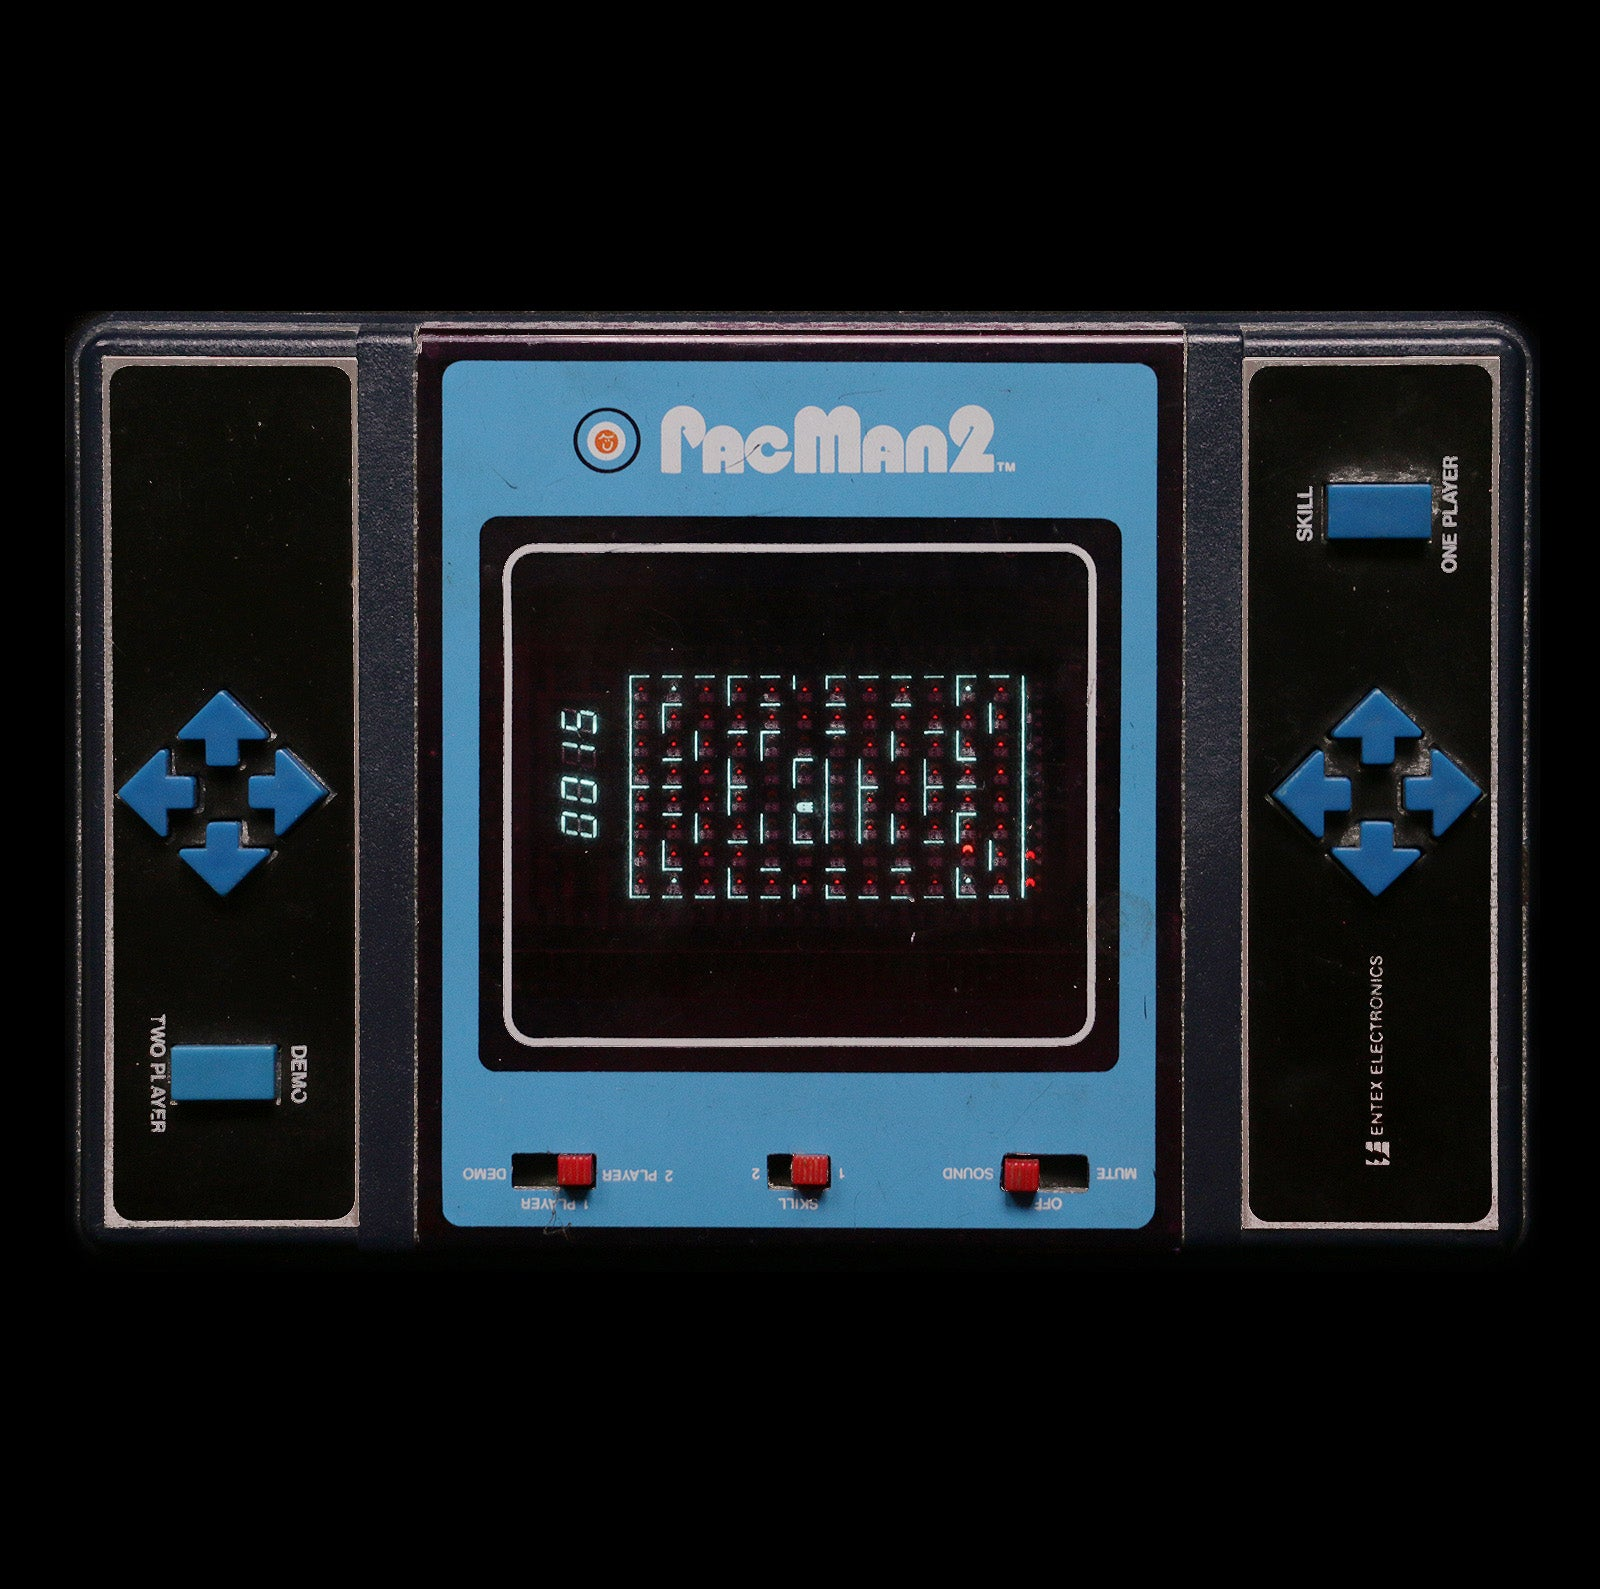 photo essay classic handheld game portraits kotaku photo essay 13 classic handheld game portraits